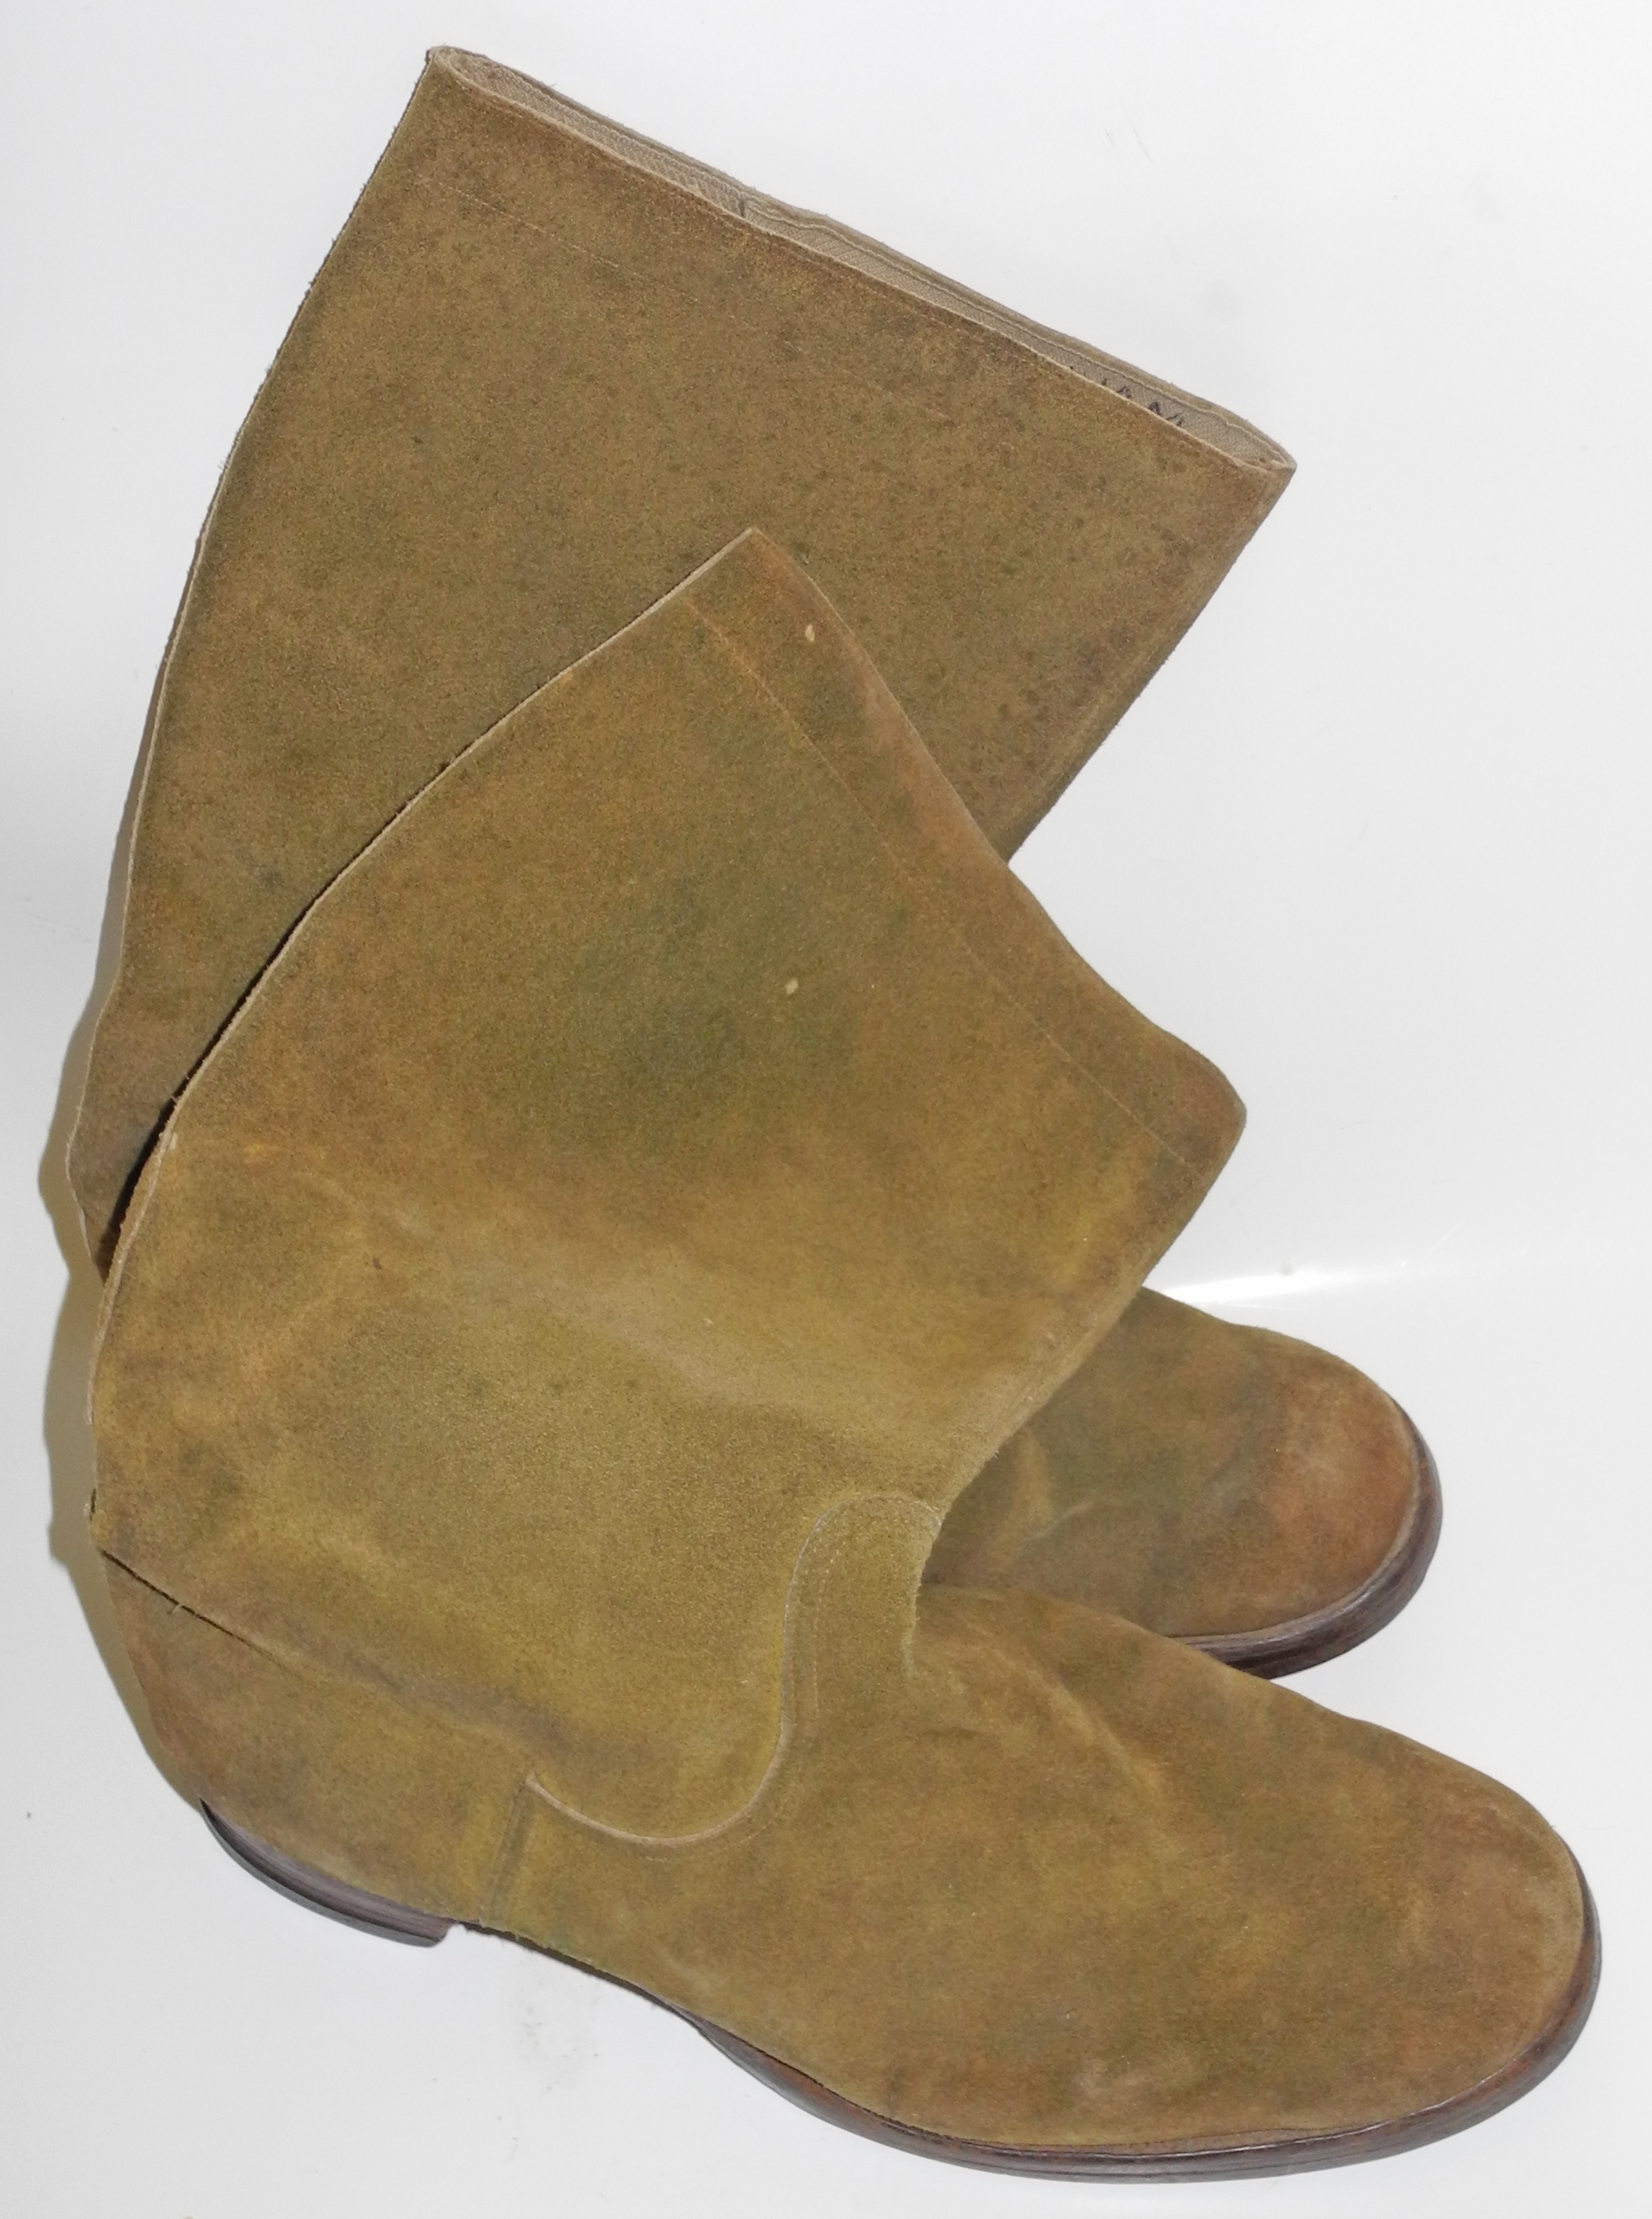 RAF Mosquito boots with Battle of Britain history